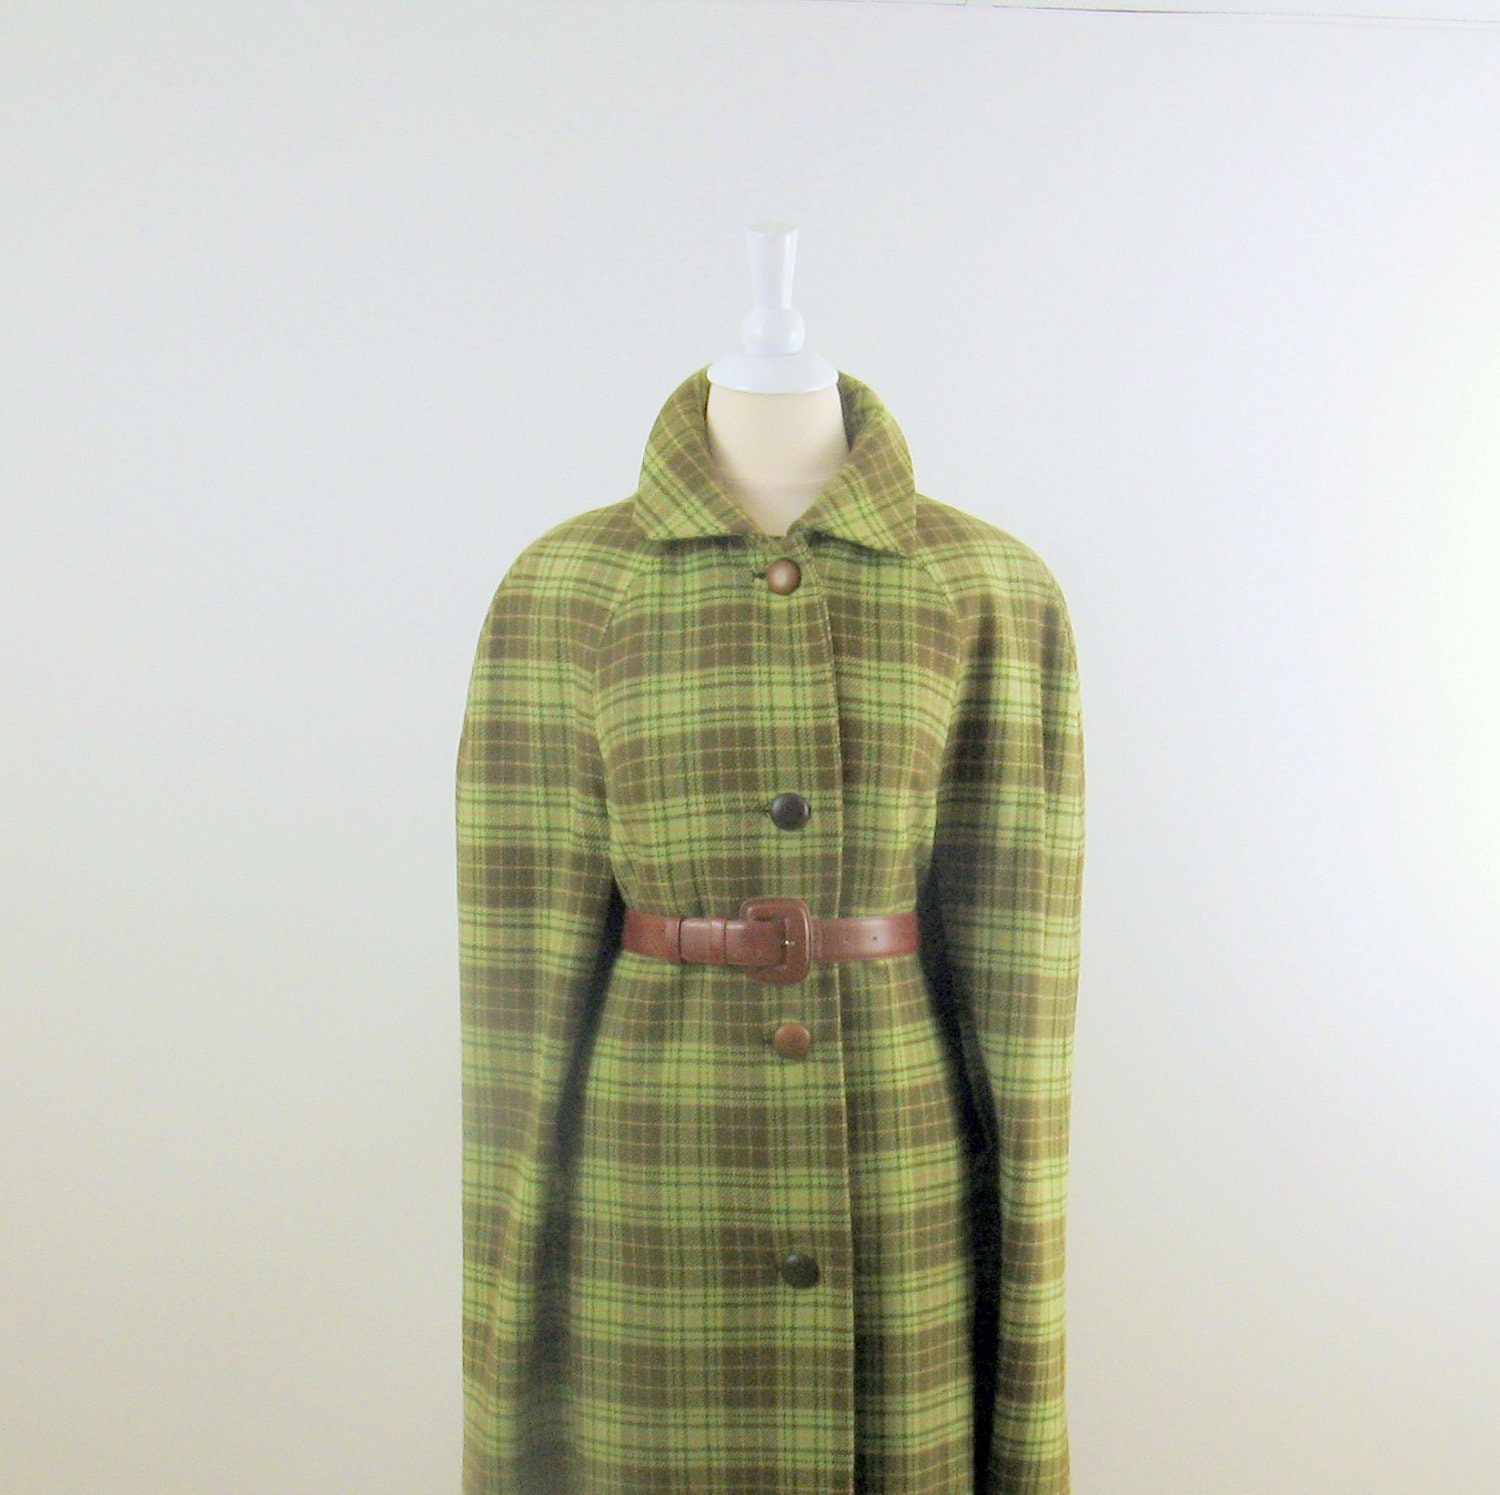 Vintage Wool Cape - 1960s Green Plaid - One Size by Habig Rodex England - TwoMoxie